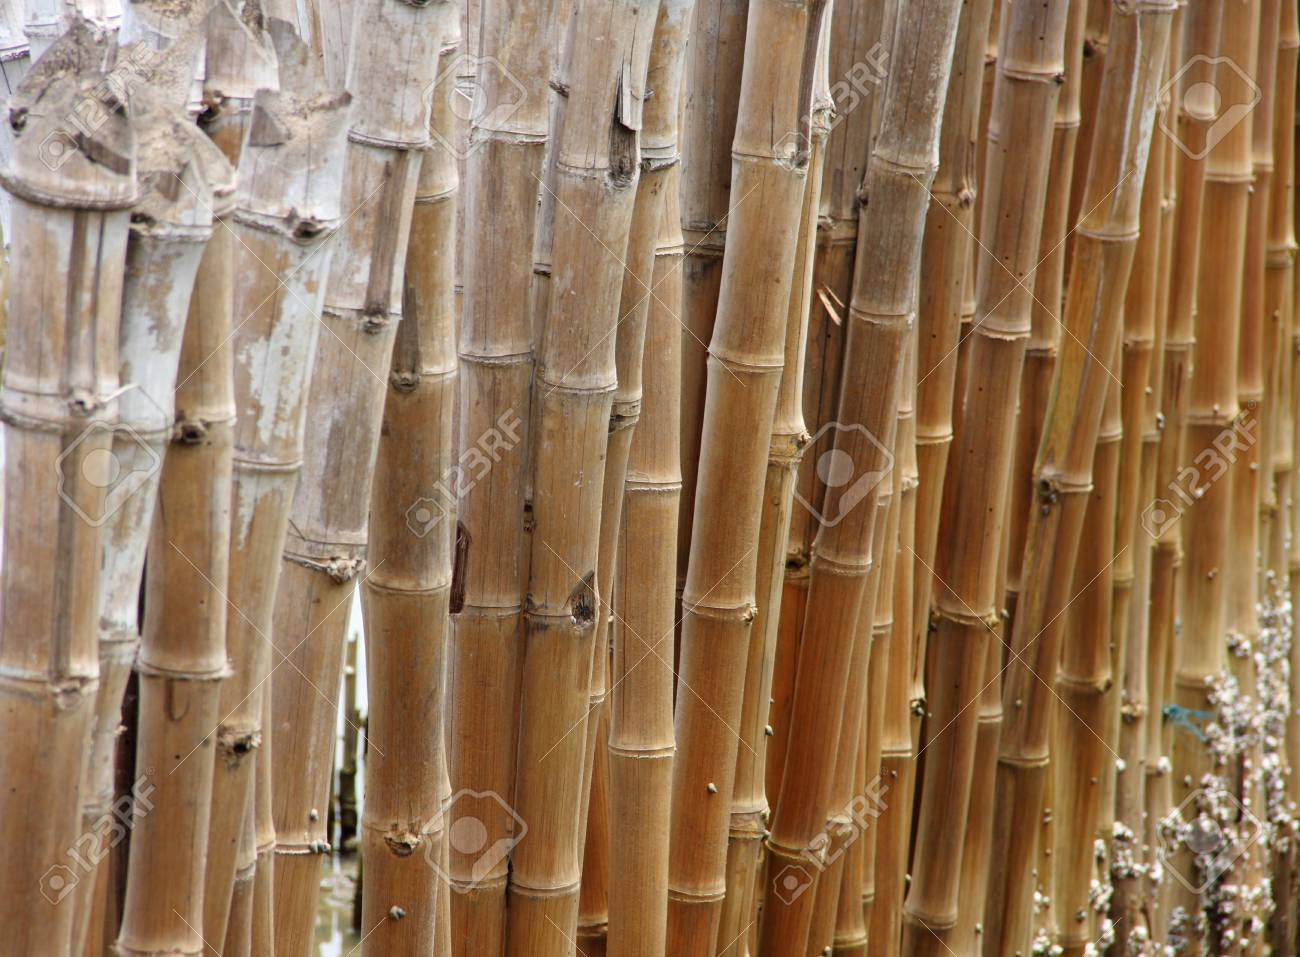 b4ea7f2bce7d row of cane or bamboo on the esteury Stock Photo - 14600216